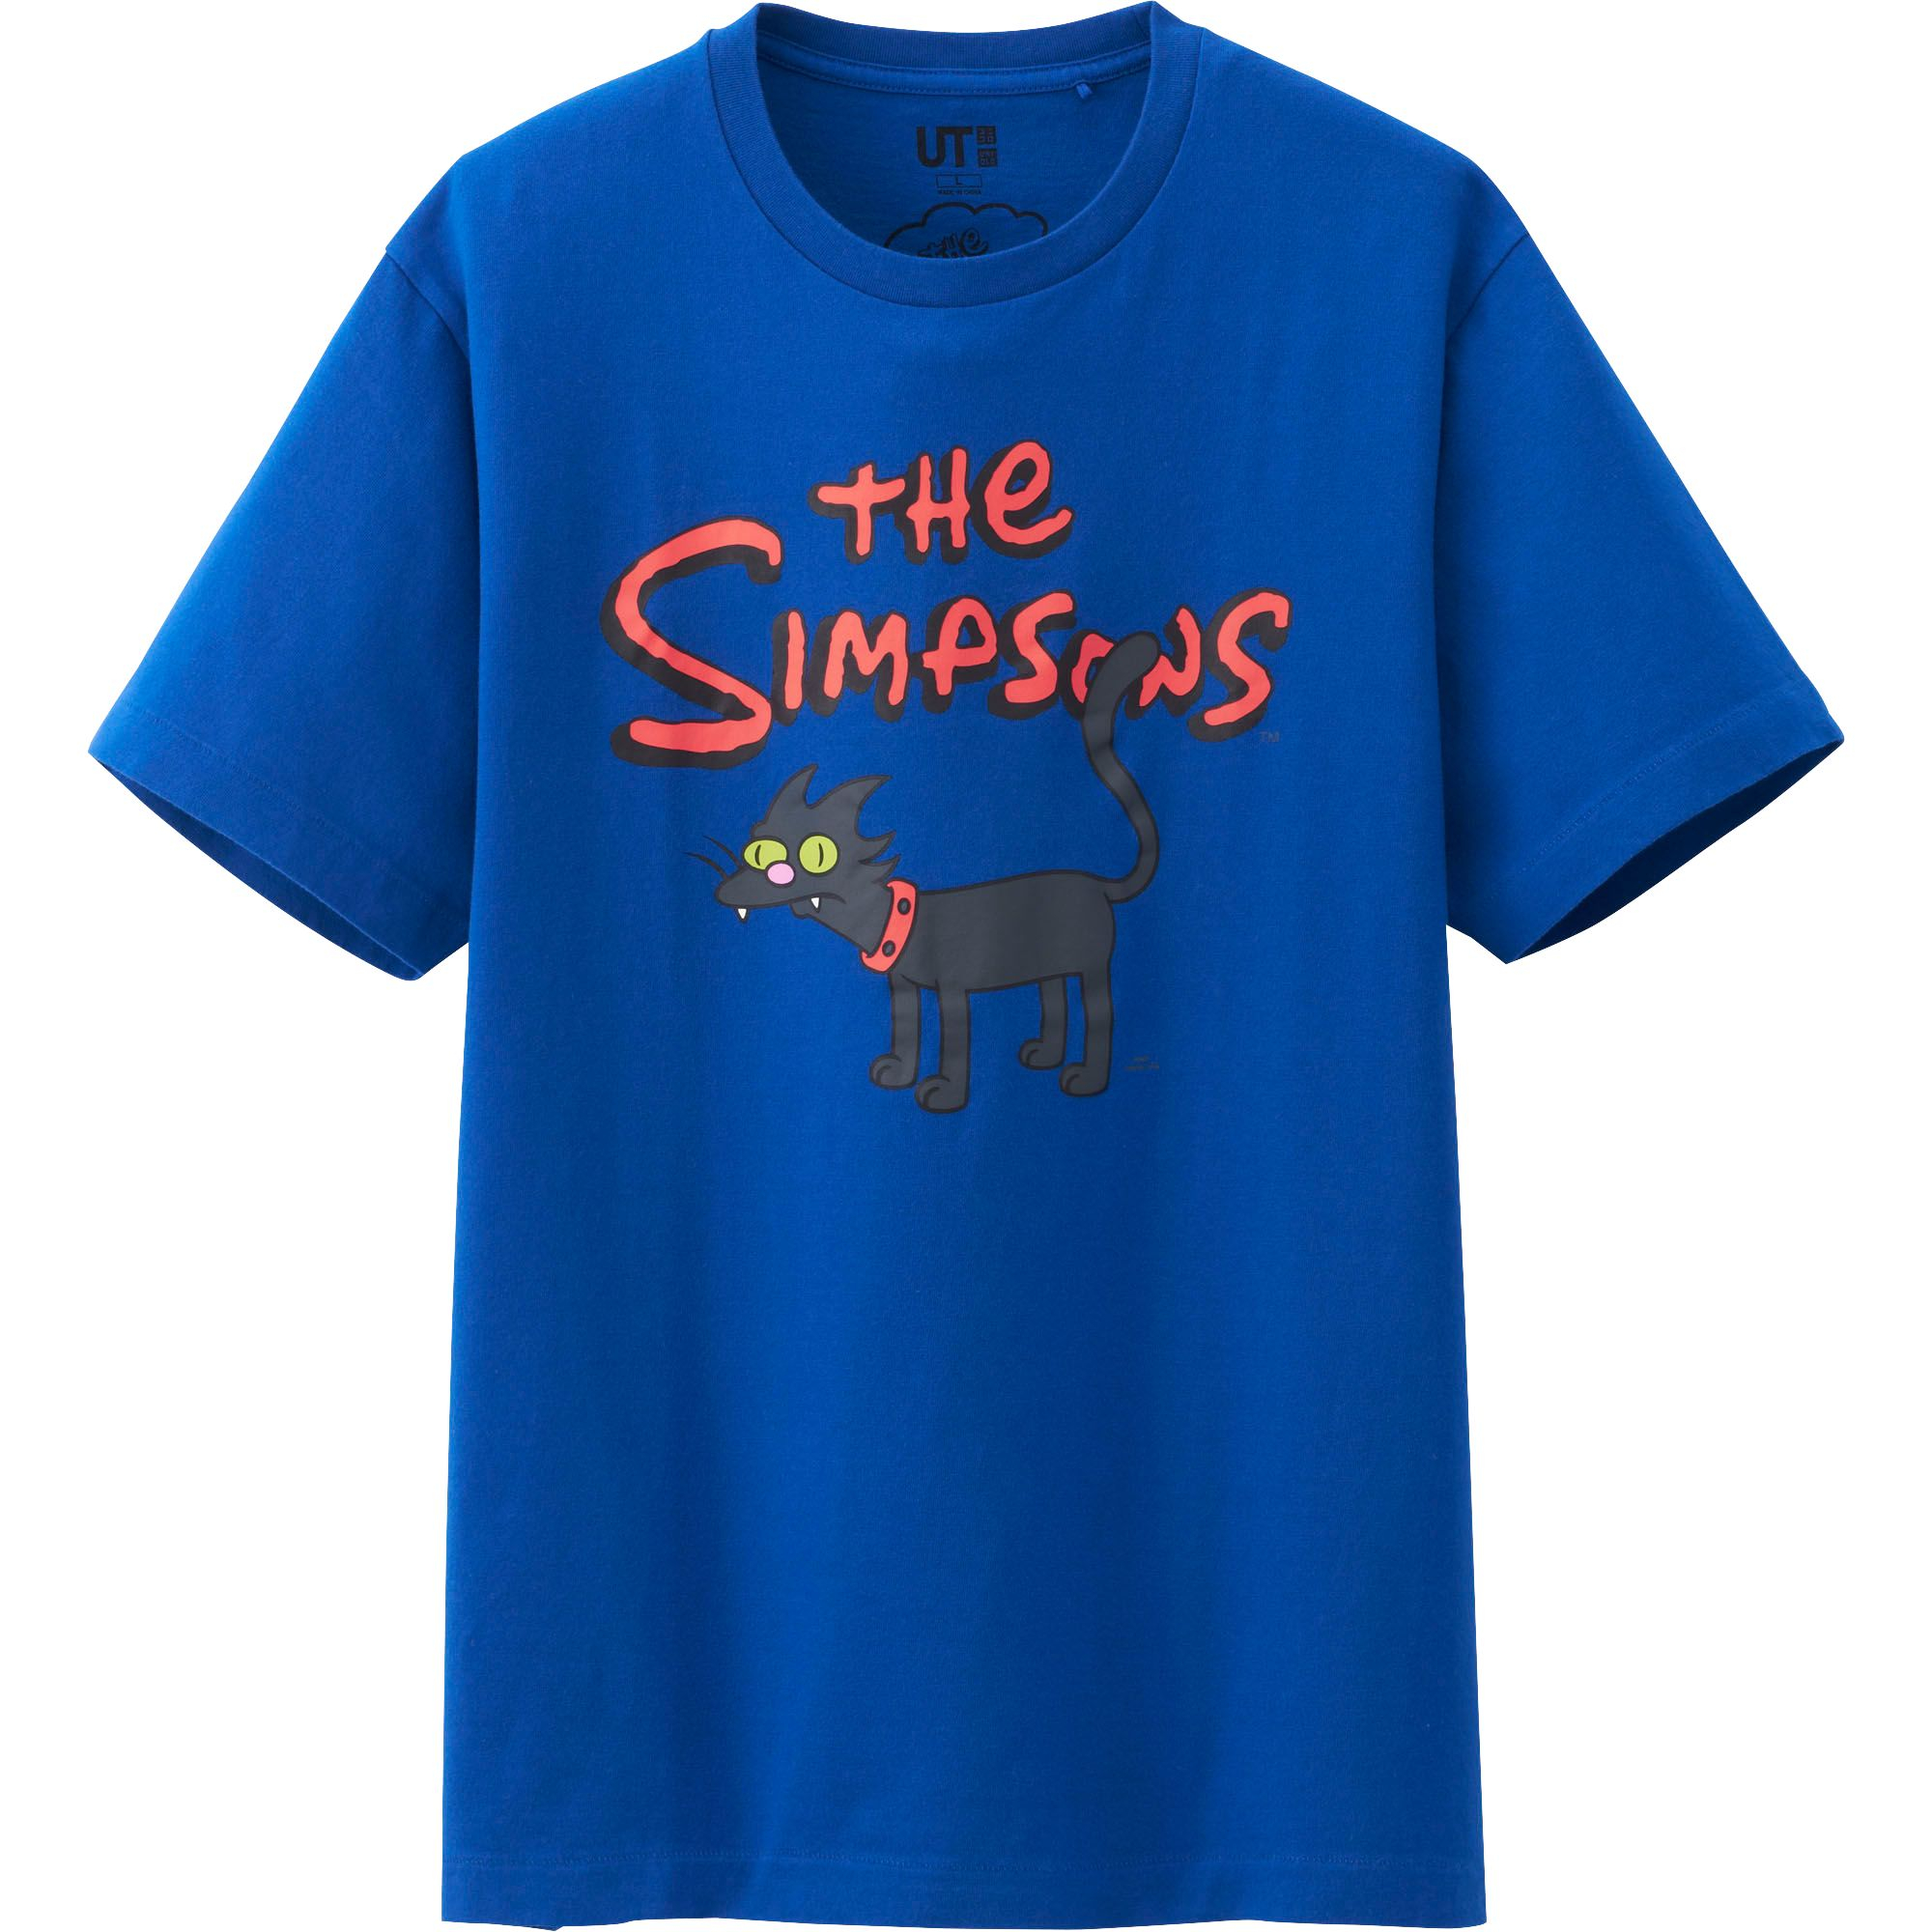 Uniqlo Men The Simpsons Graphic Short Sleeve T Shirt In